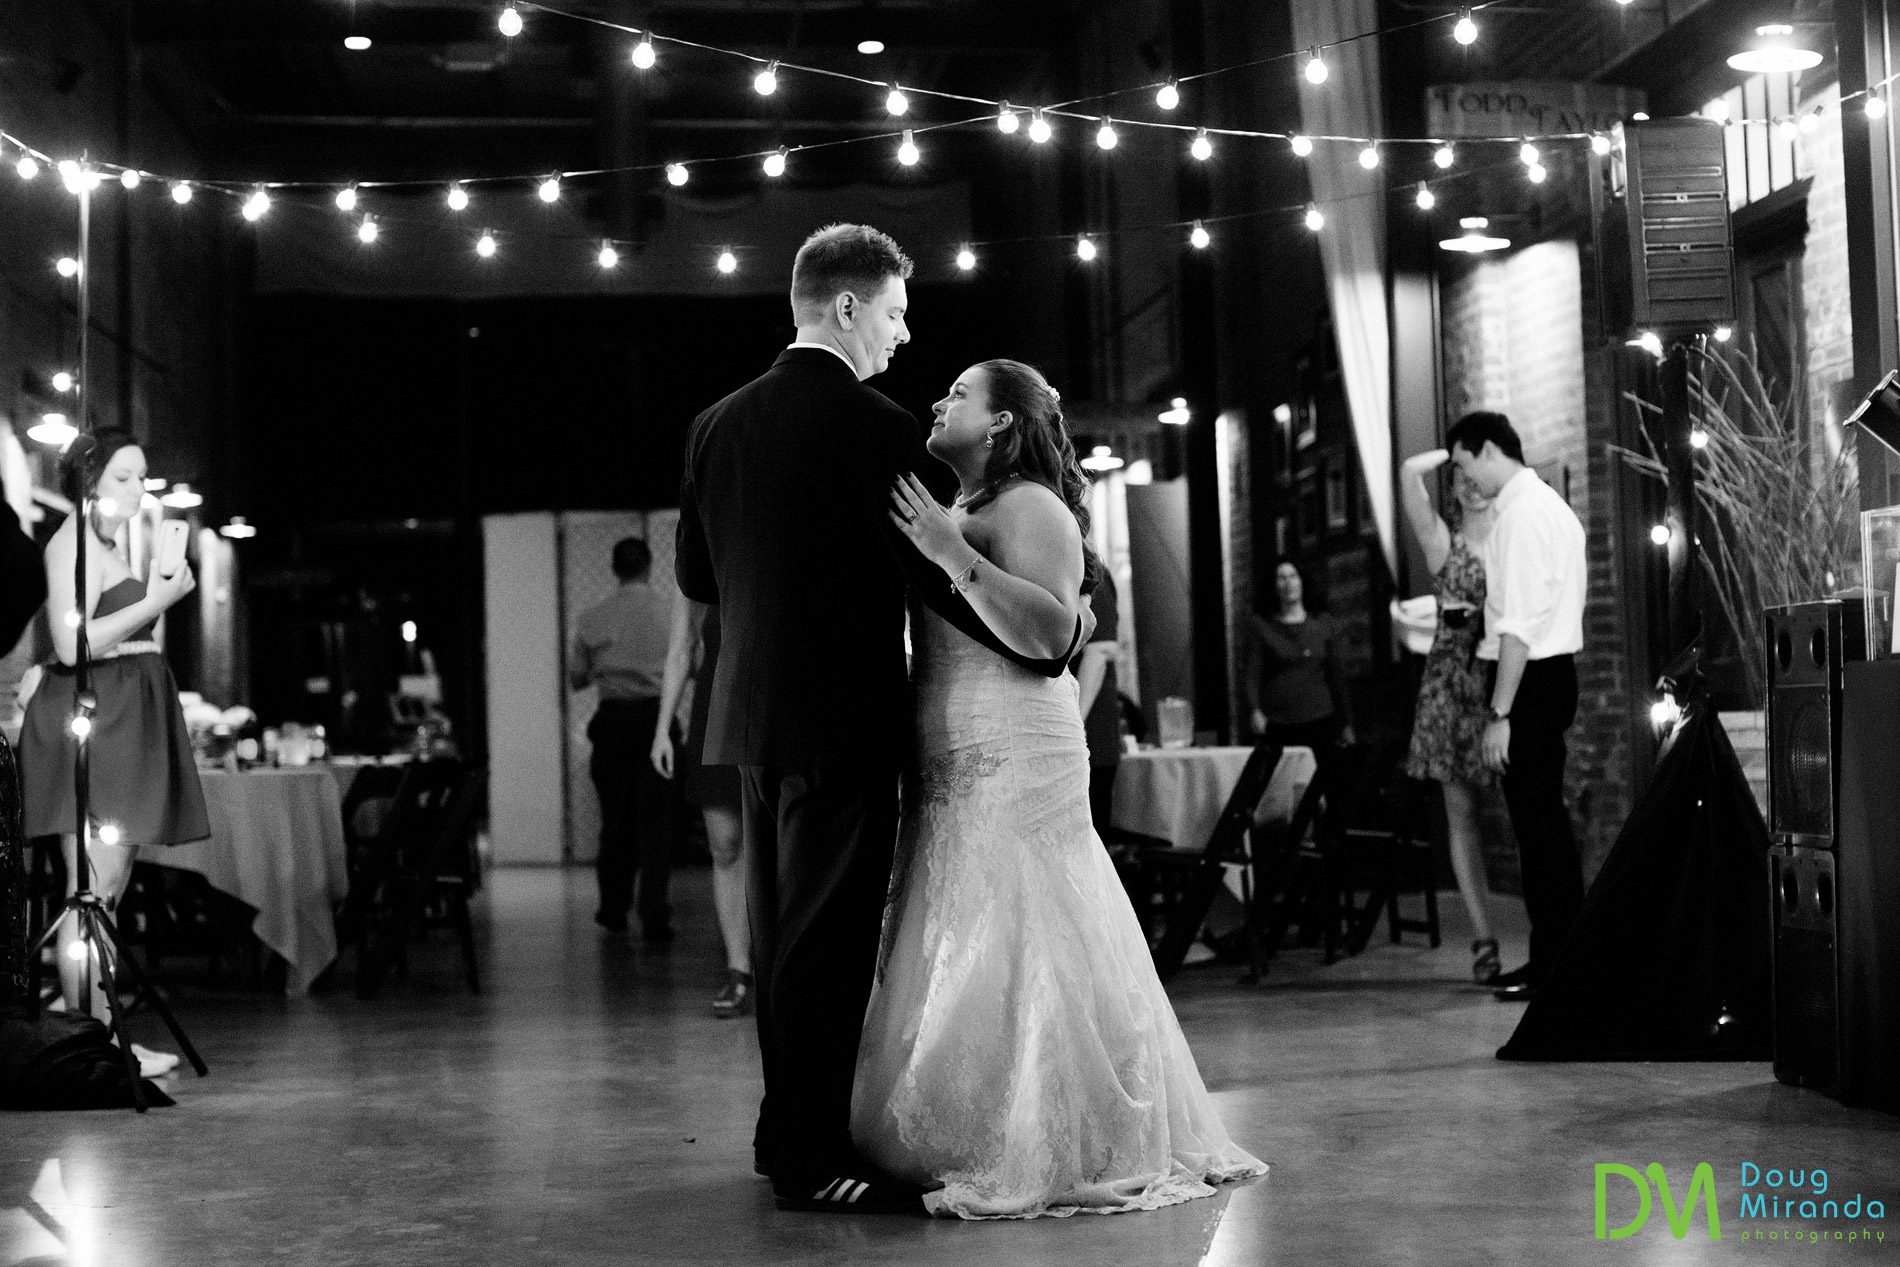 old sugar mill boiler room wedding.